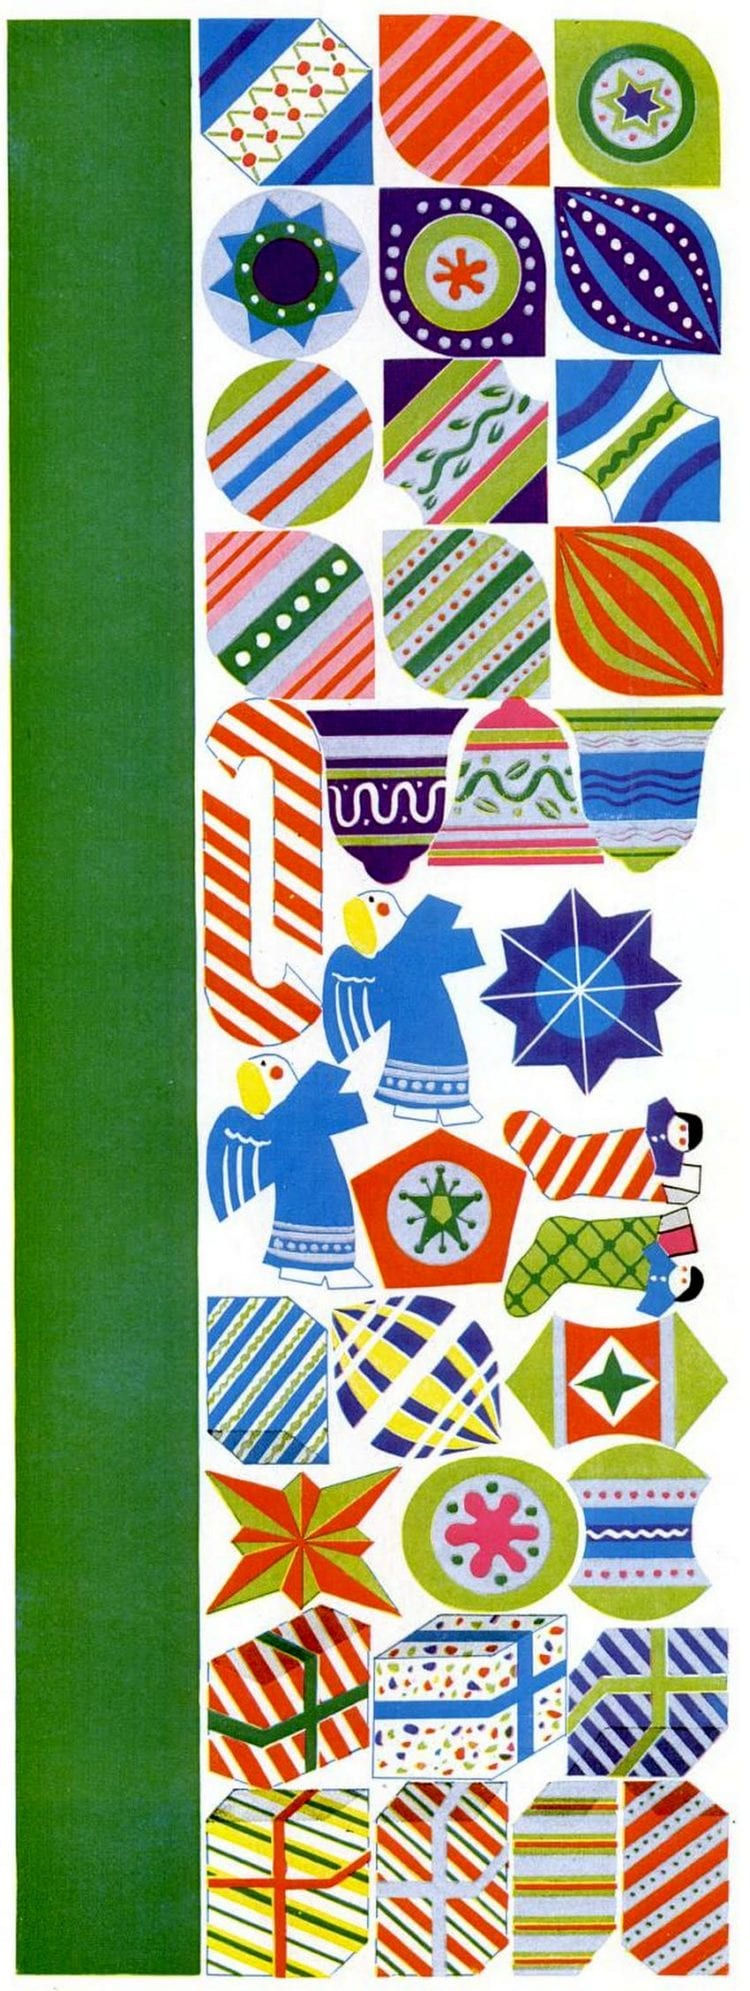 1950 Paper Christmas tree craft - Ornaments and decorations (1)